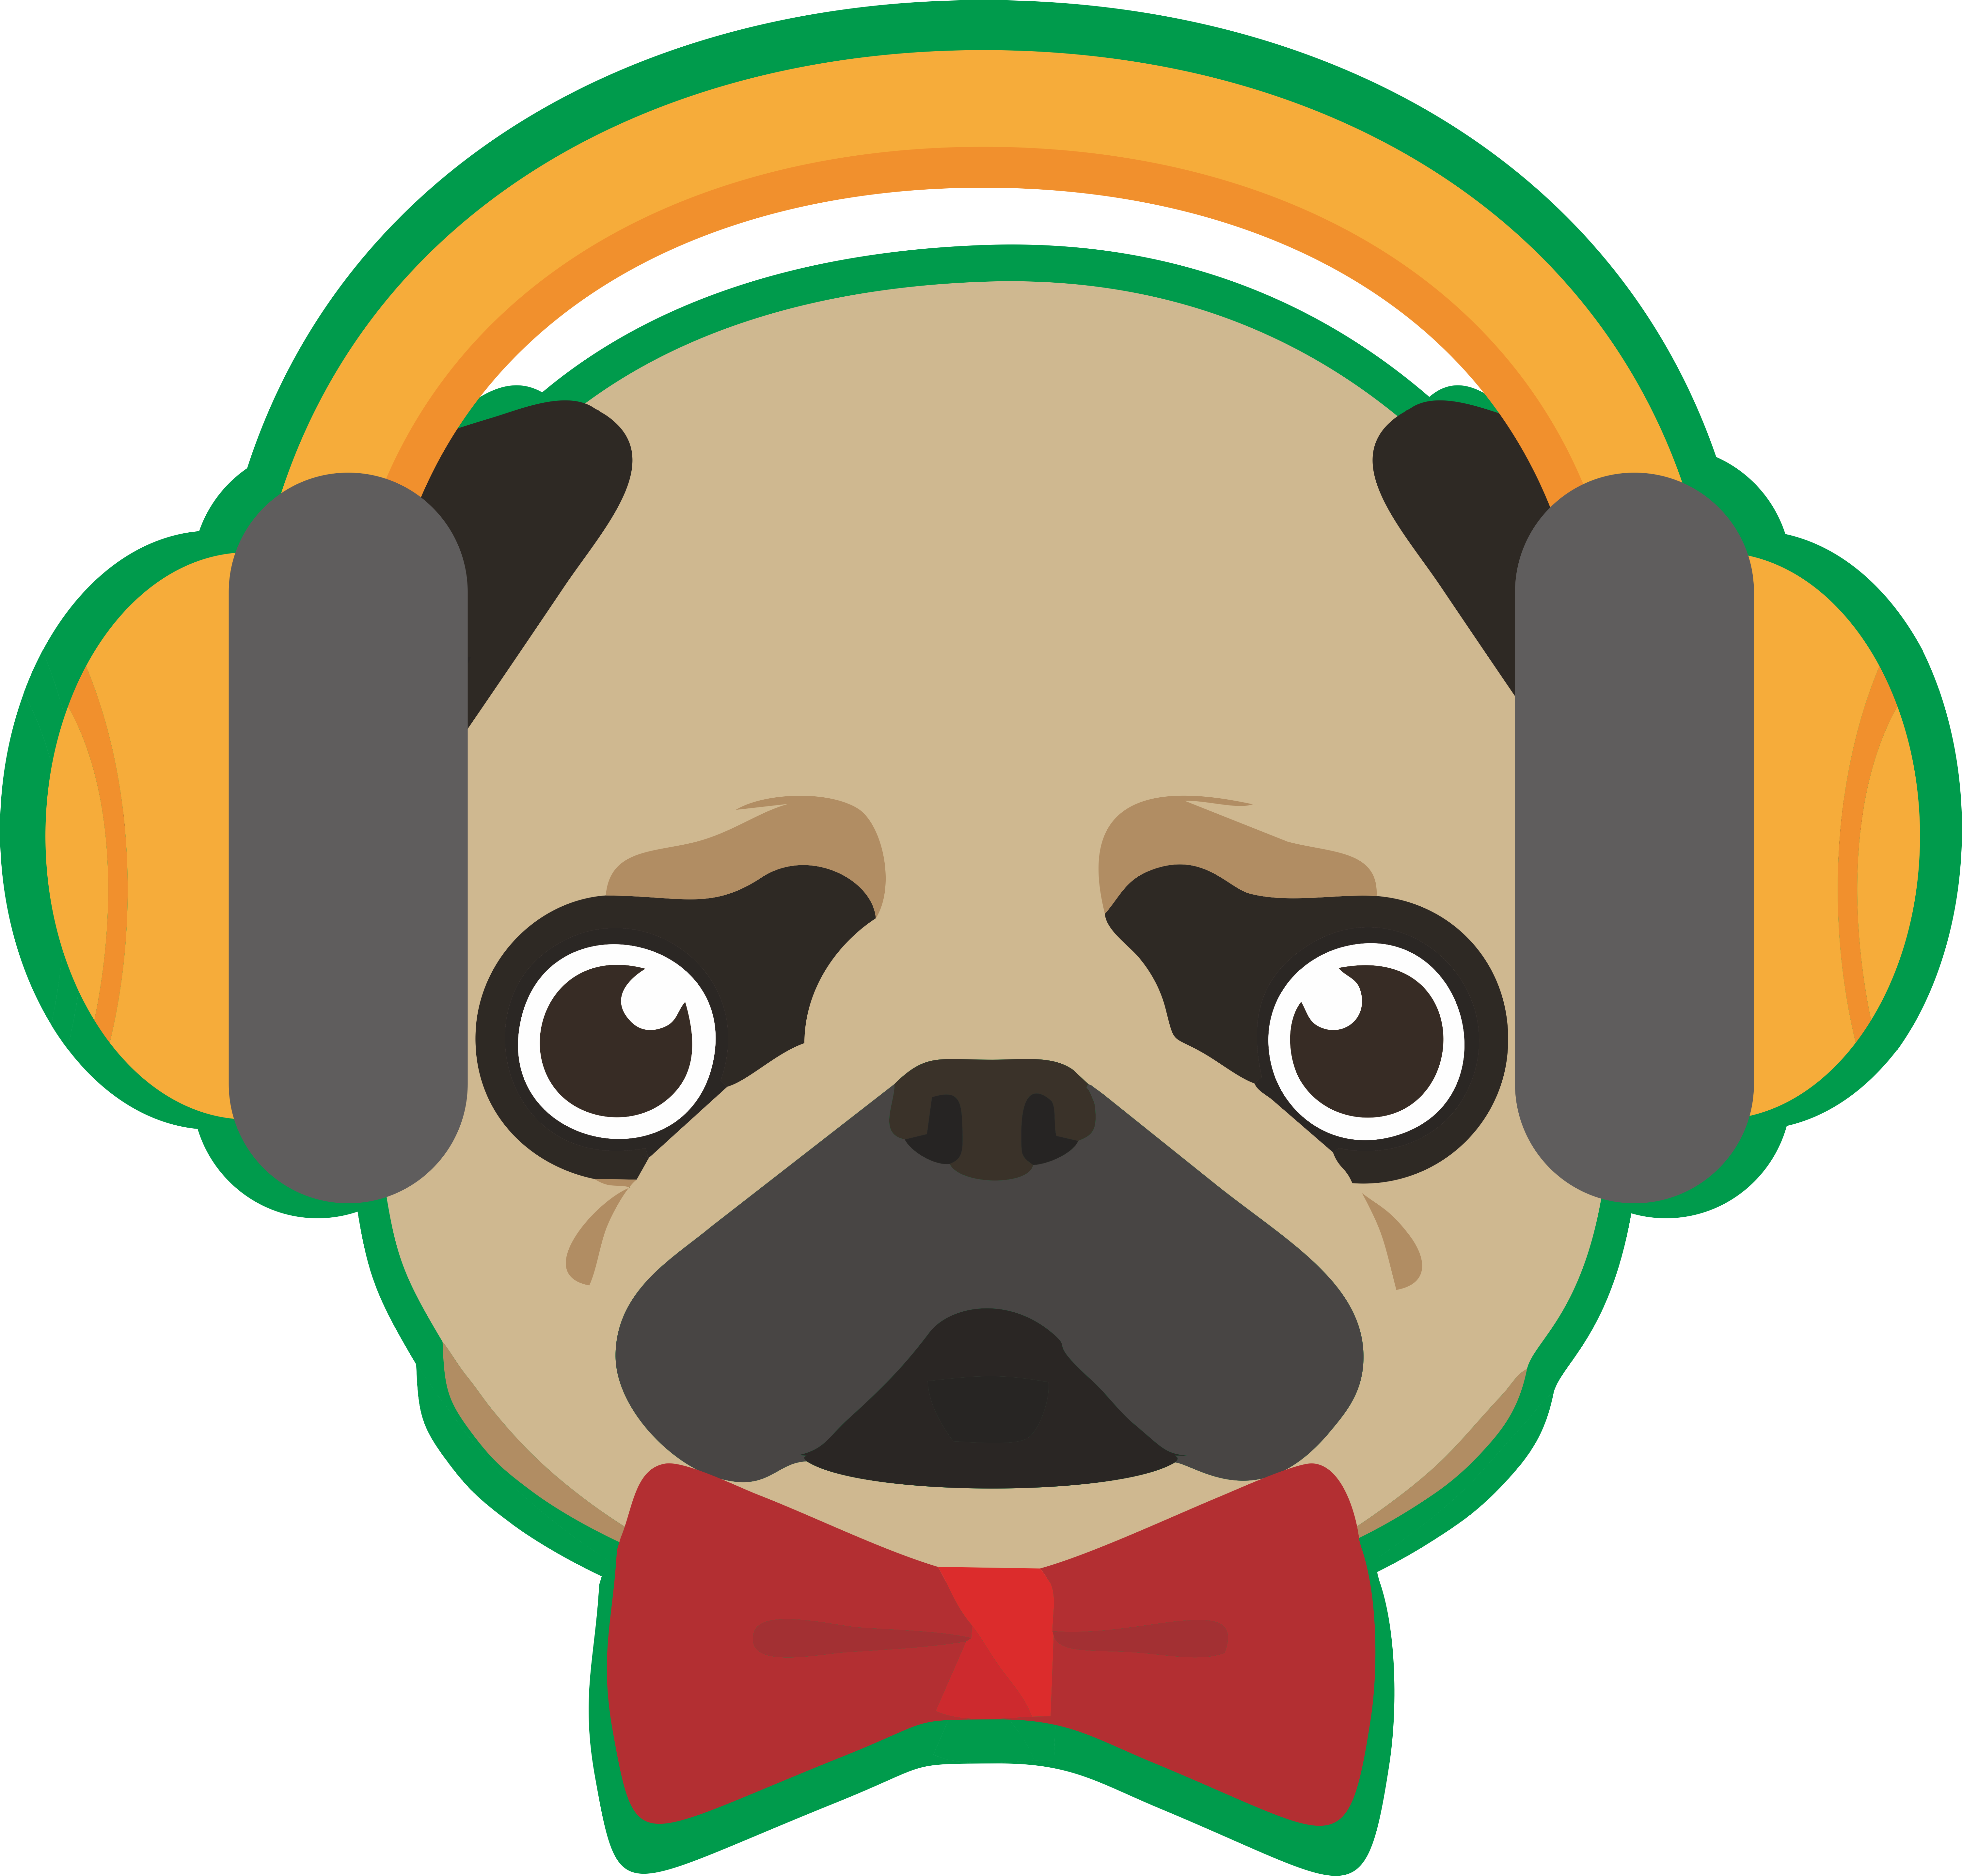 Dog nose png. Pug puppy breed clip